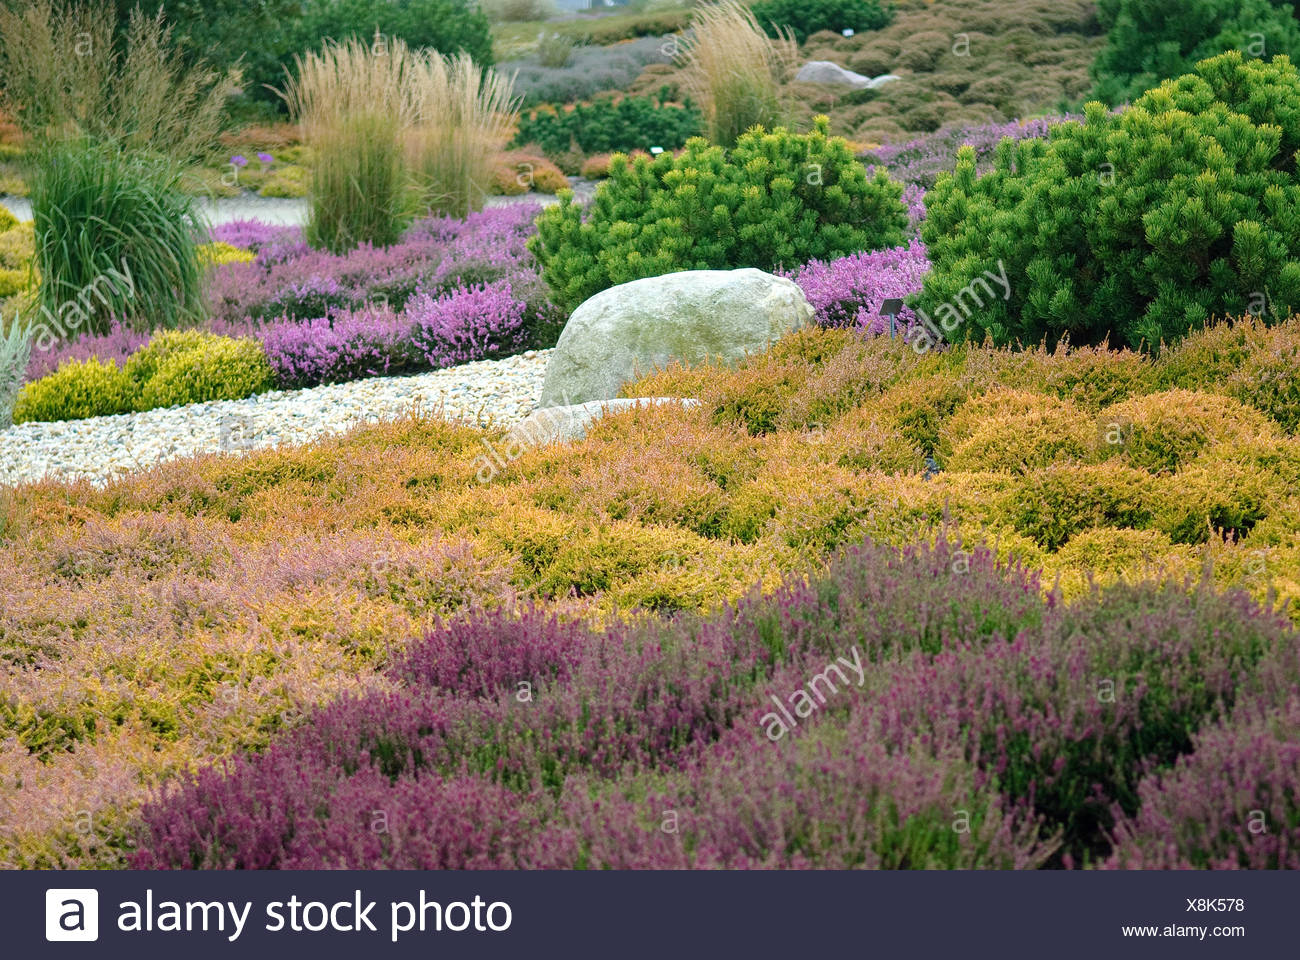 heather, ling (Calluna vulgaris 'Firefly', Calluna vulgaris Firefly), cultivar Firefly together with other cultivars - Stock Image